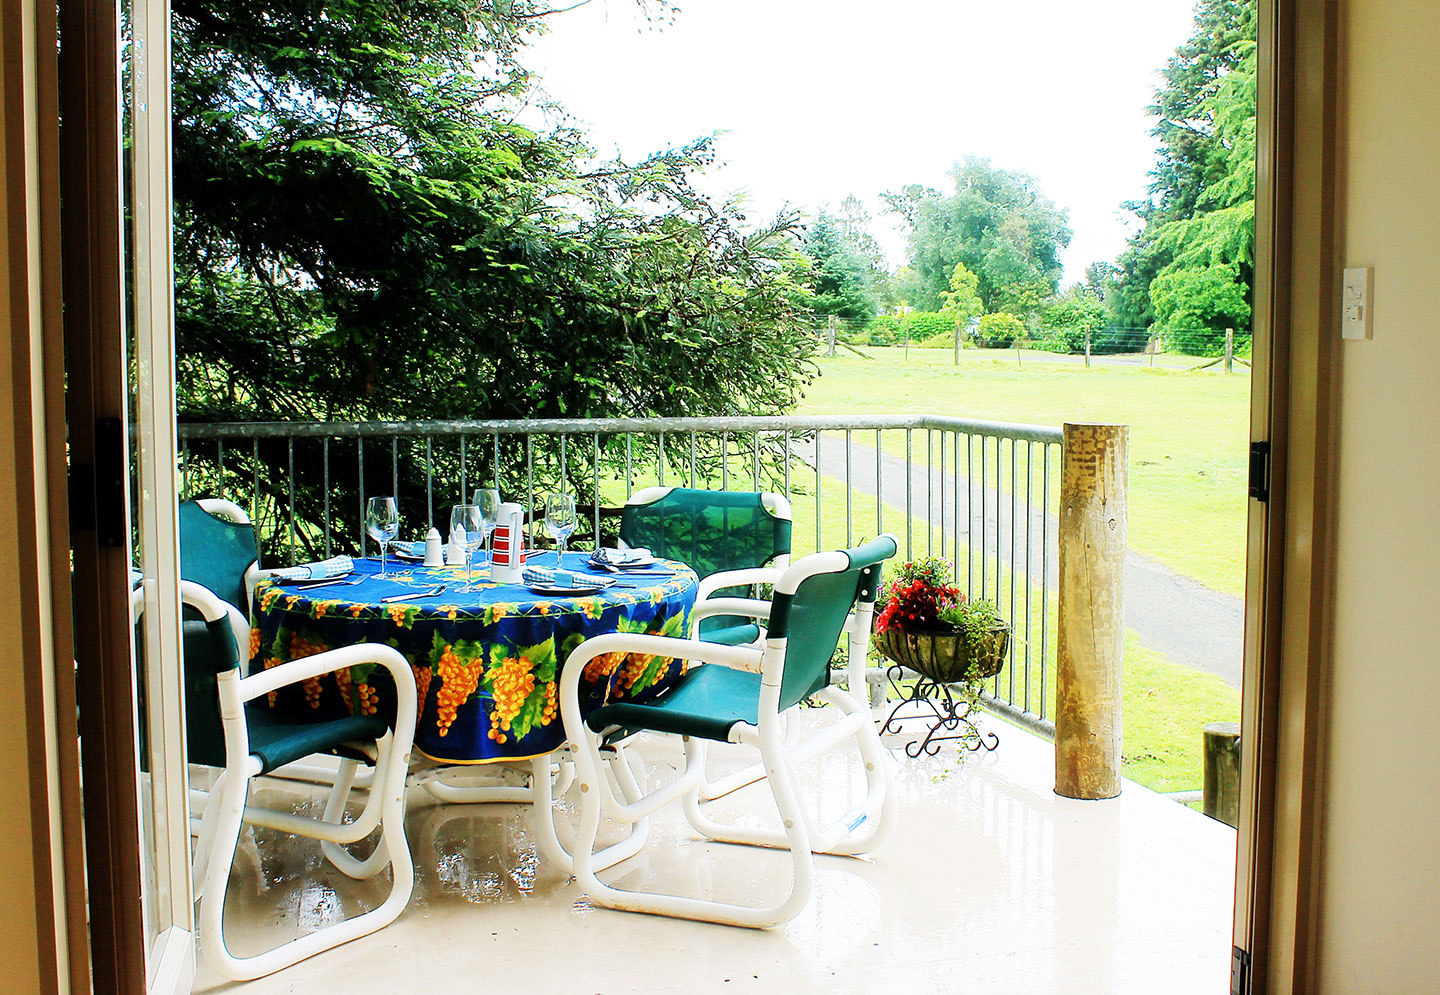 The Carriage House self-catering accommodation outdoor dining area